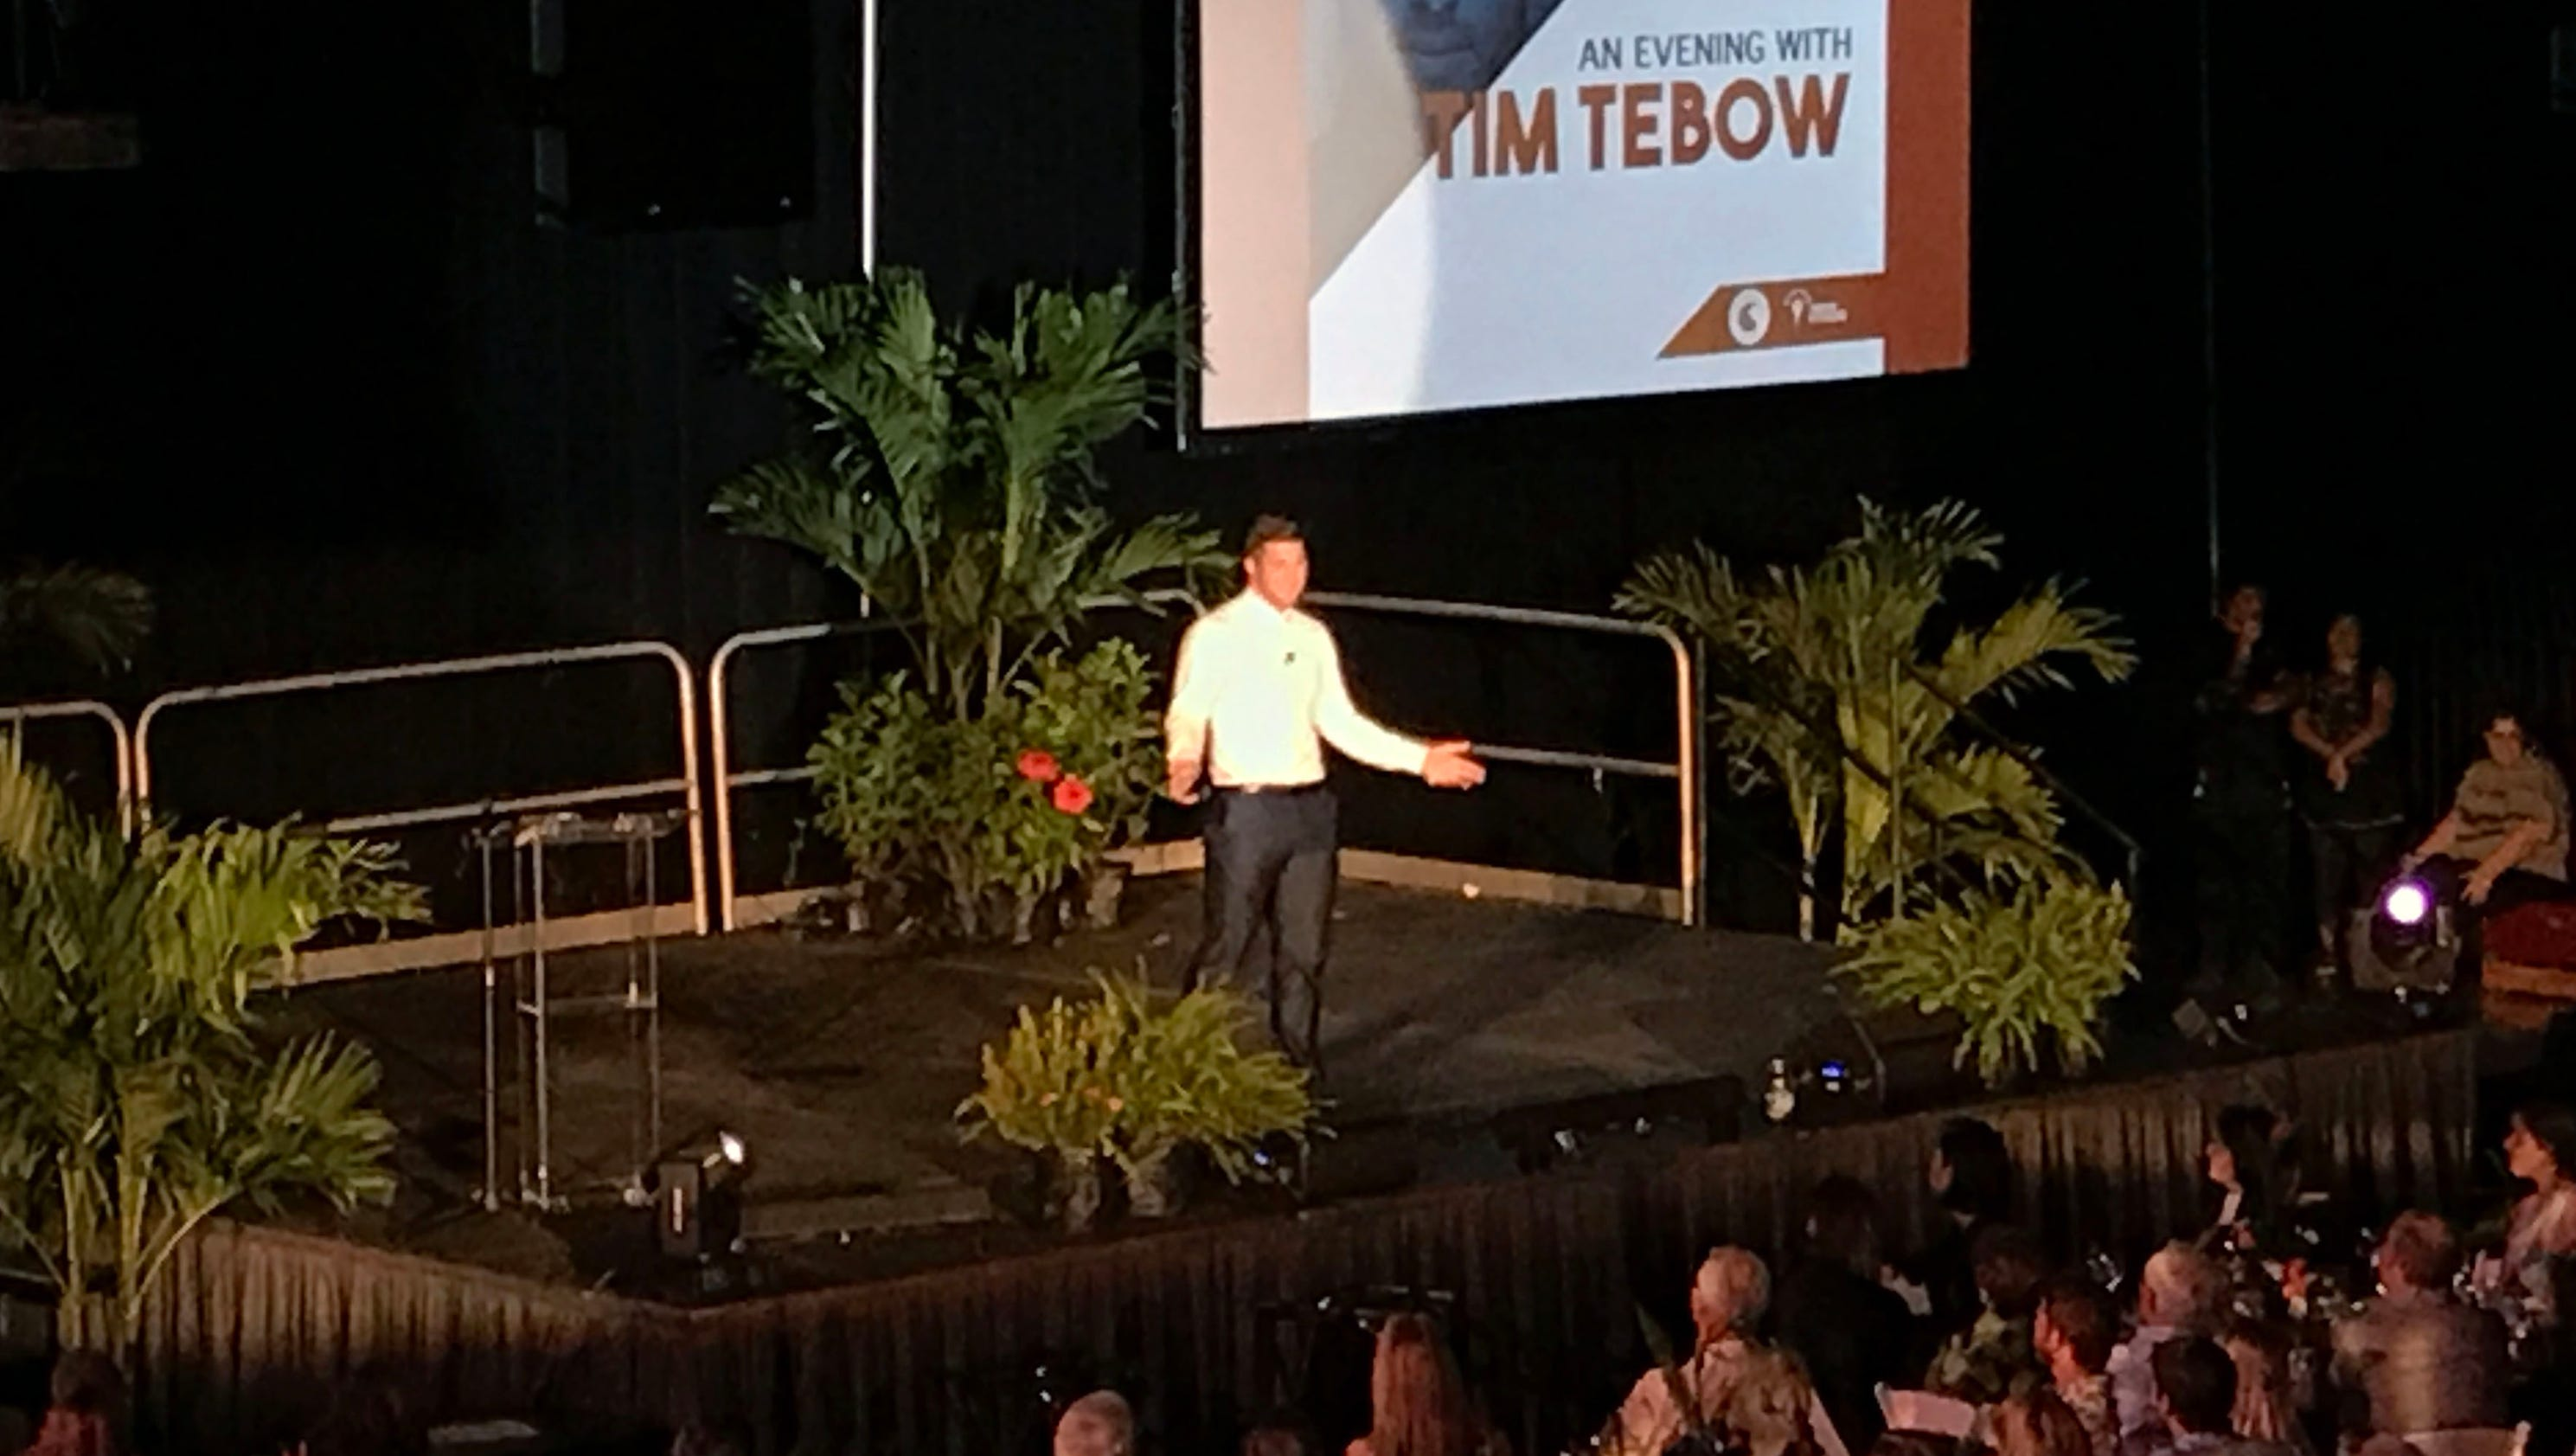 Who does tim tebow date in Melbourne